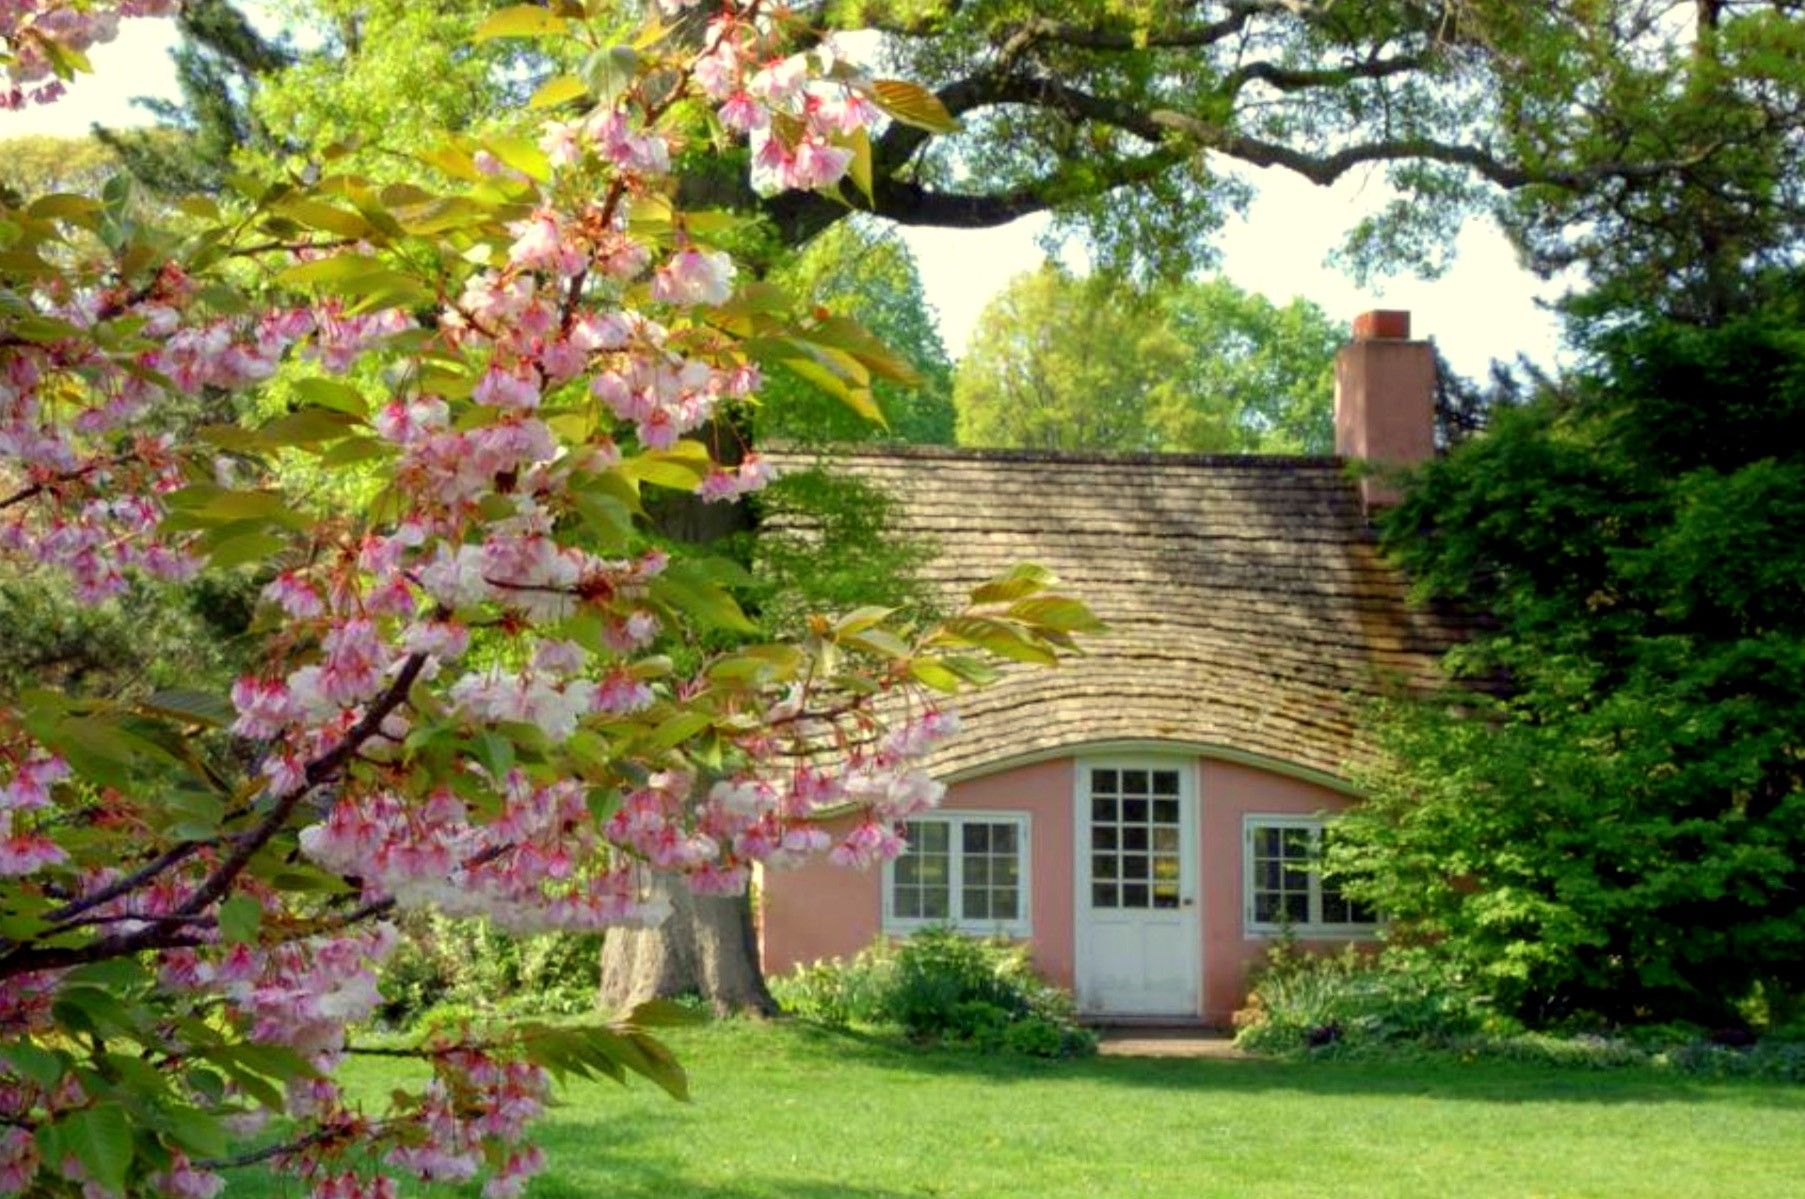 Beautiful Cherry Cottage Wallpaper Widescreen Full HD 1805x1199